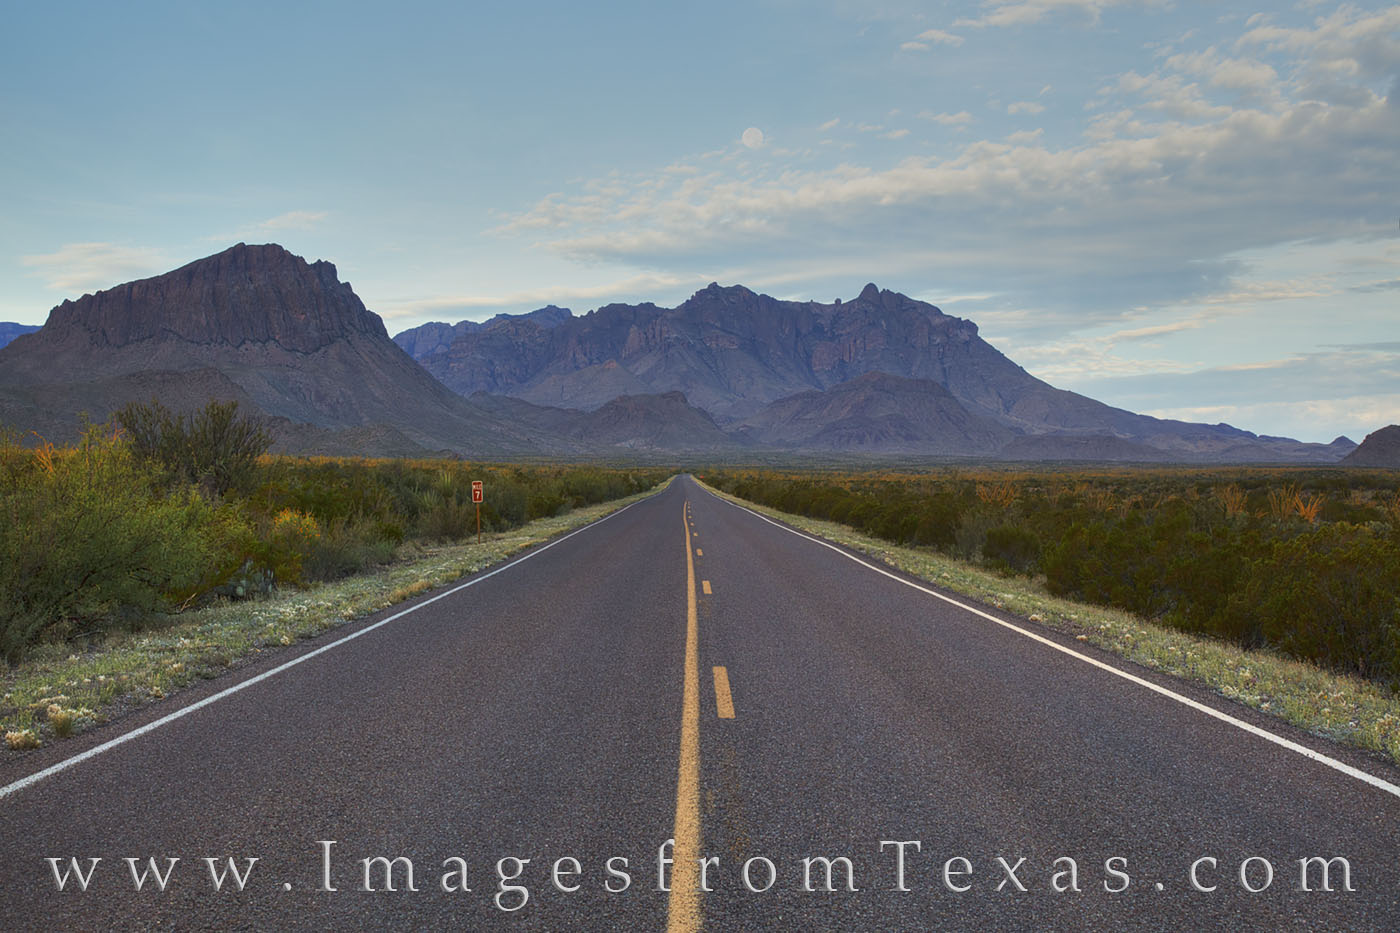 Chisos mountains, big bend national park, panorama, road ocotillo, moonset, sunrise, chihuahuan desert, texas landscapes, texas hikes, chisos images, big bend images, texas national parks, photo